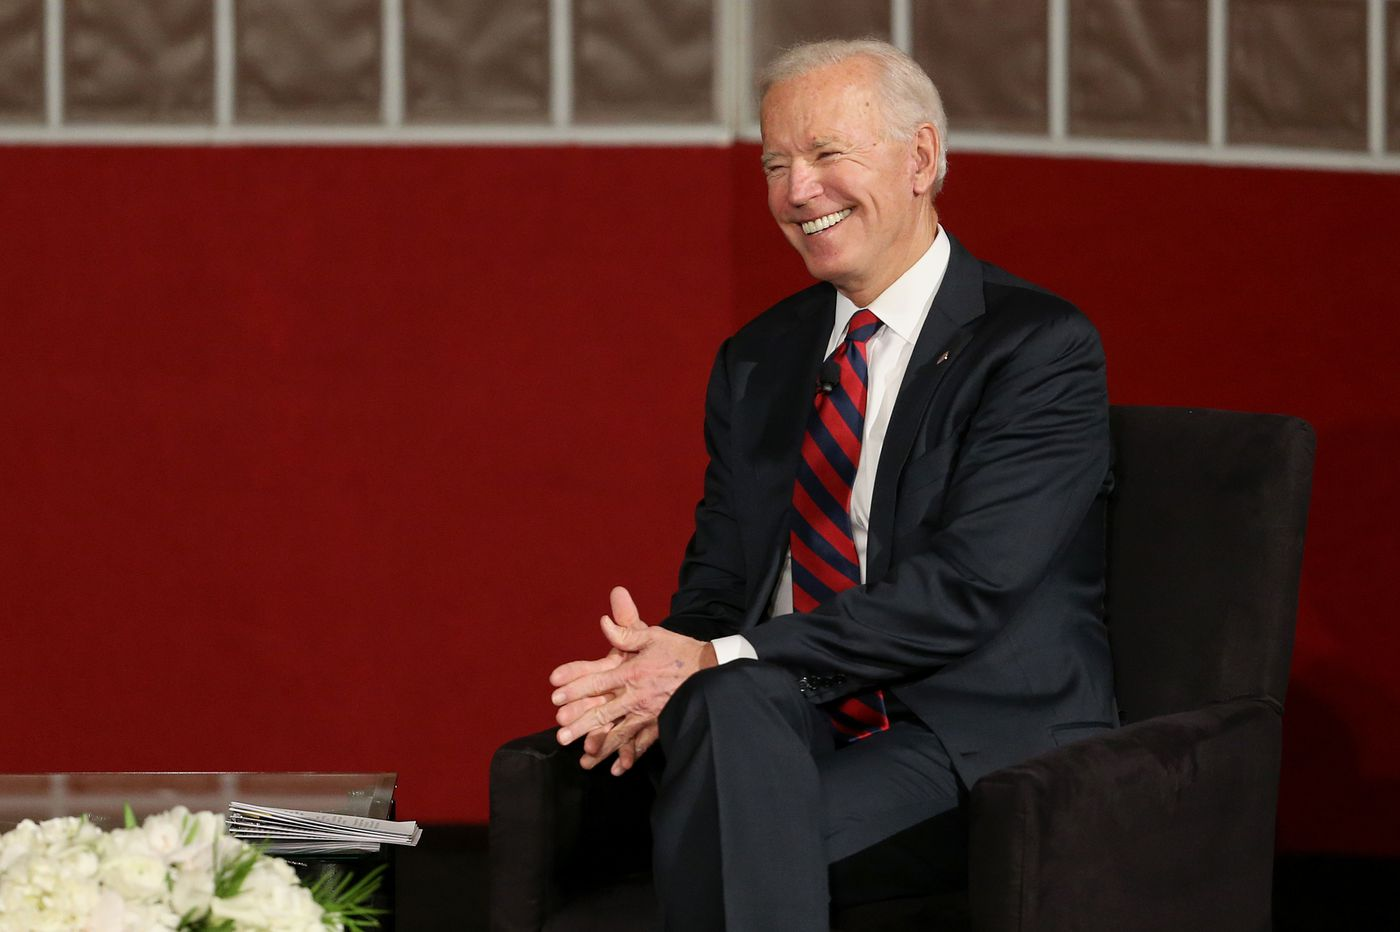 Joe Biden to launch presidential campaign Thursday, visit Pittsburgh Monday